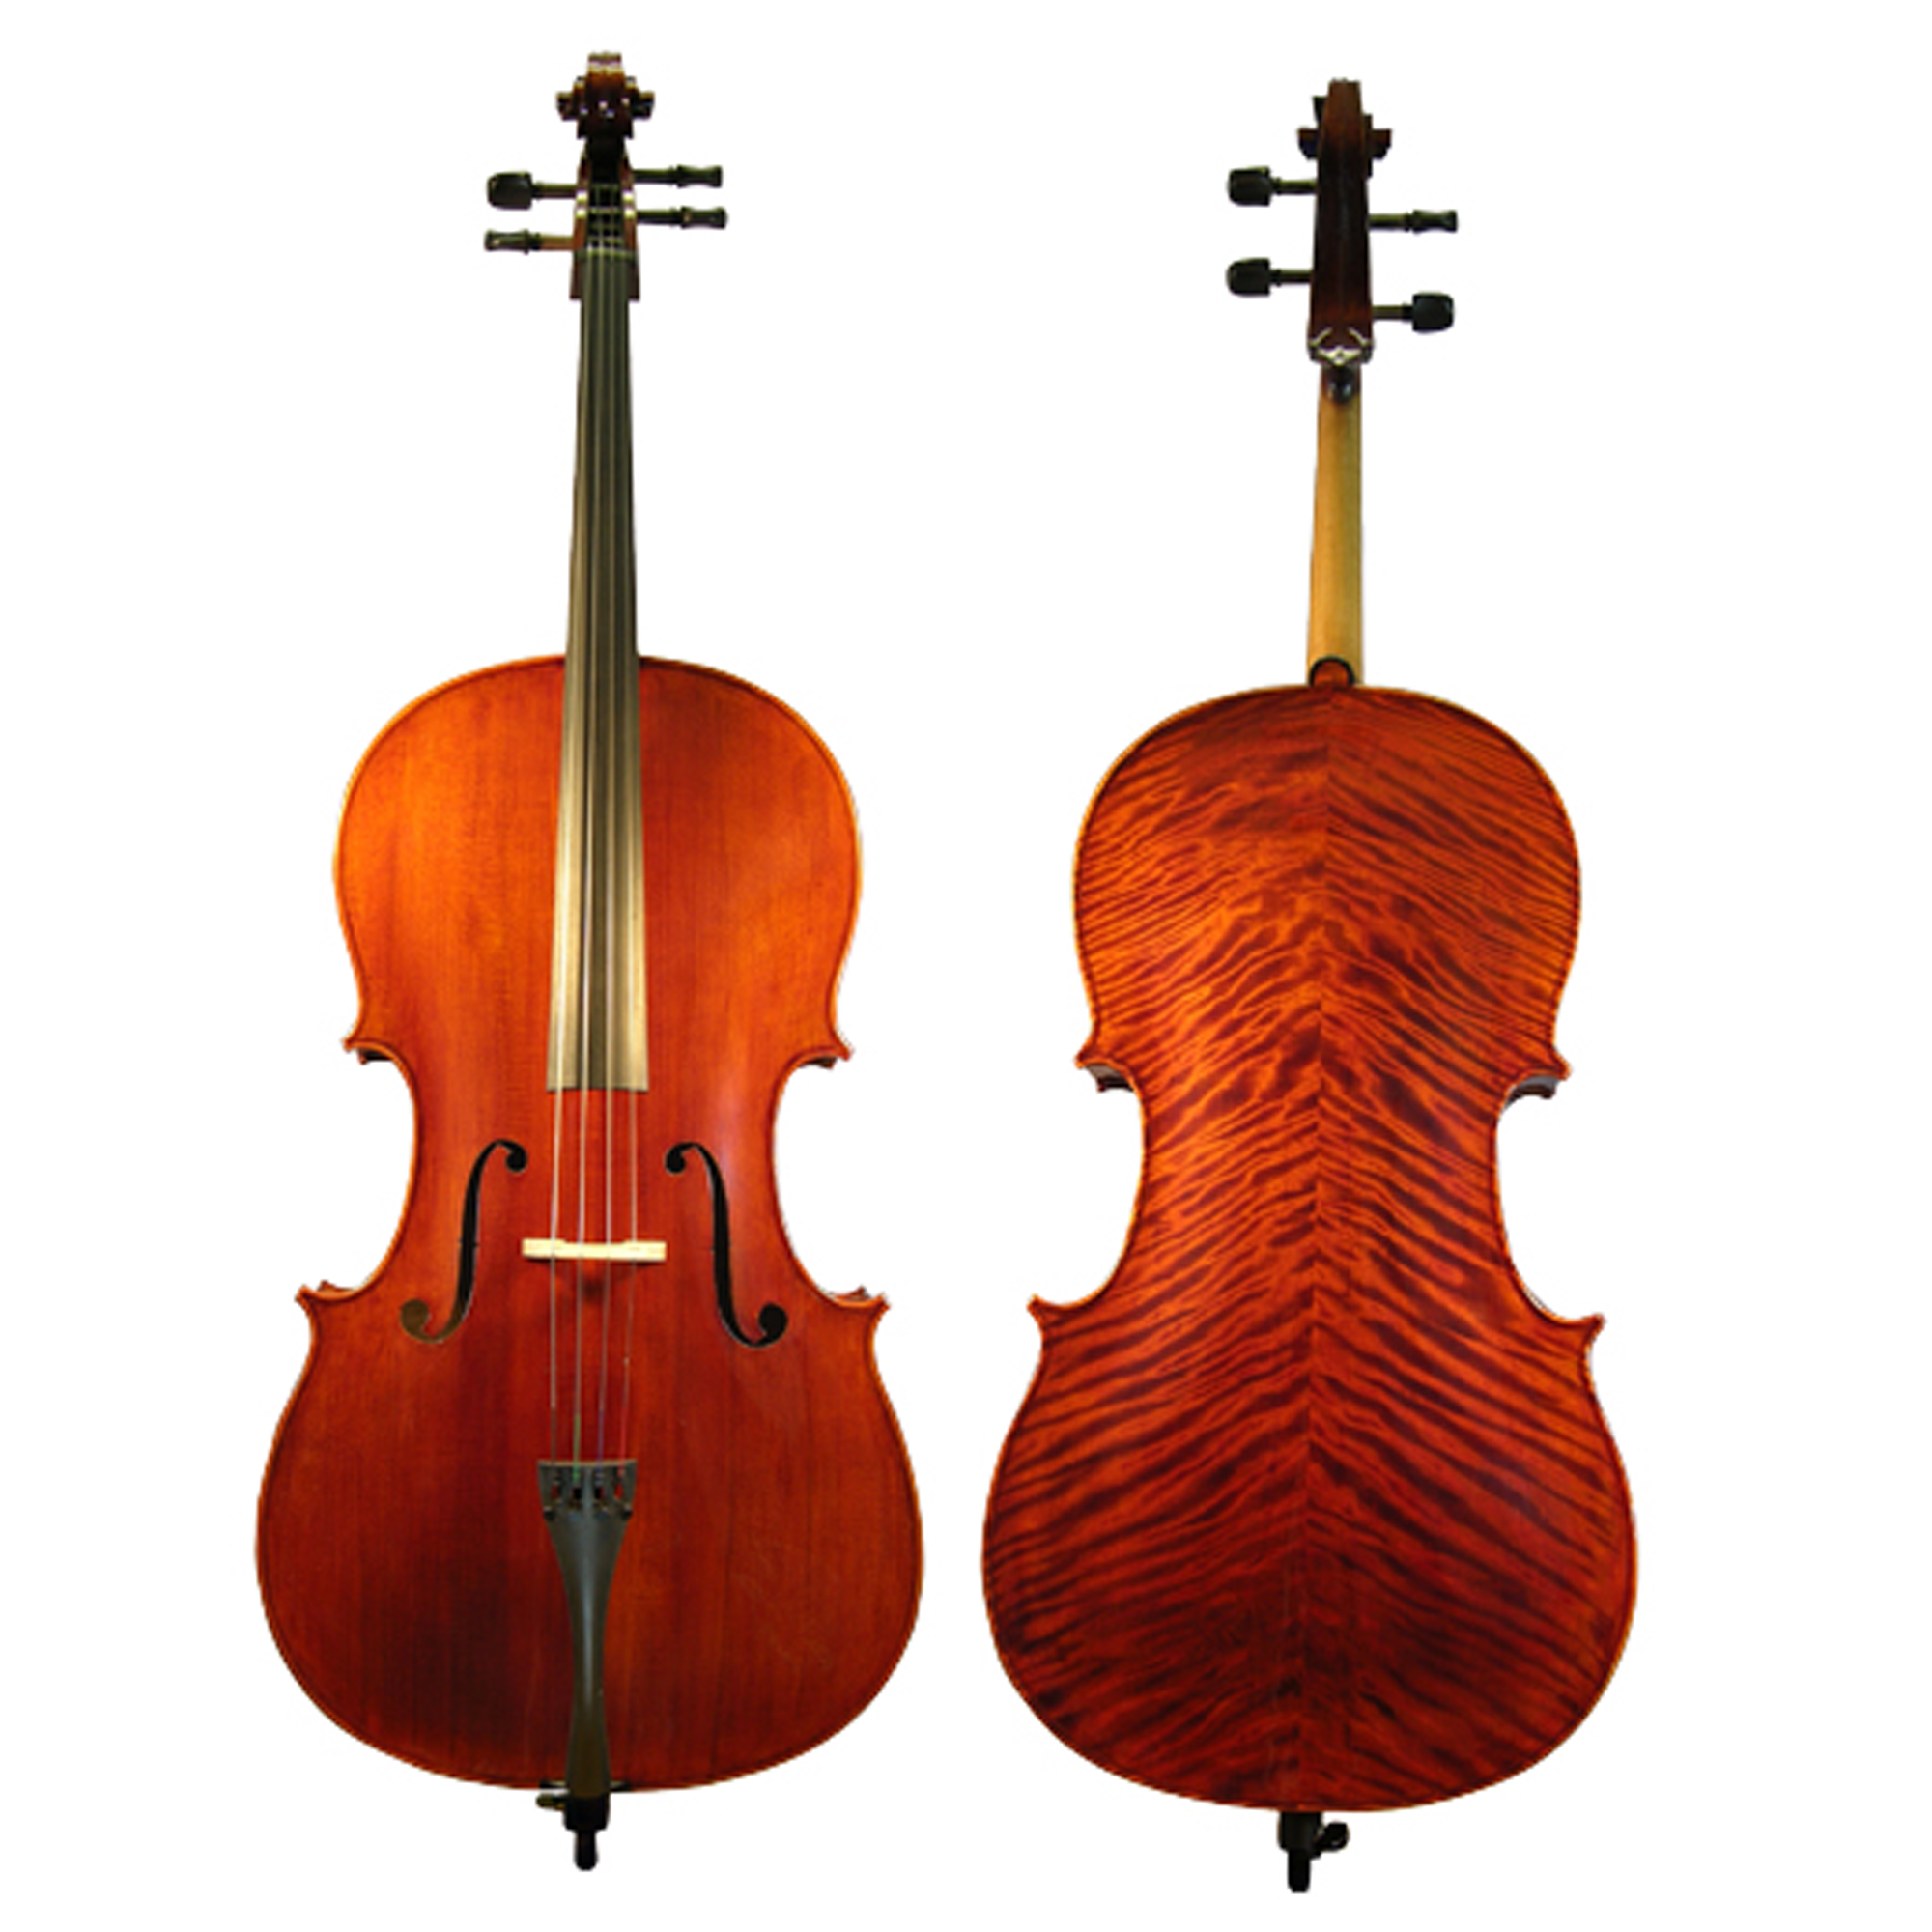 D'Luca Flamed Ebony Inlaid Professional Cello Outfit W/Padded Gig Bag, 1/2 Size